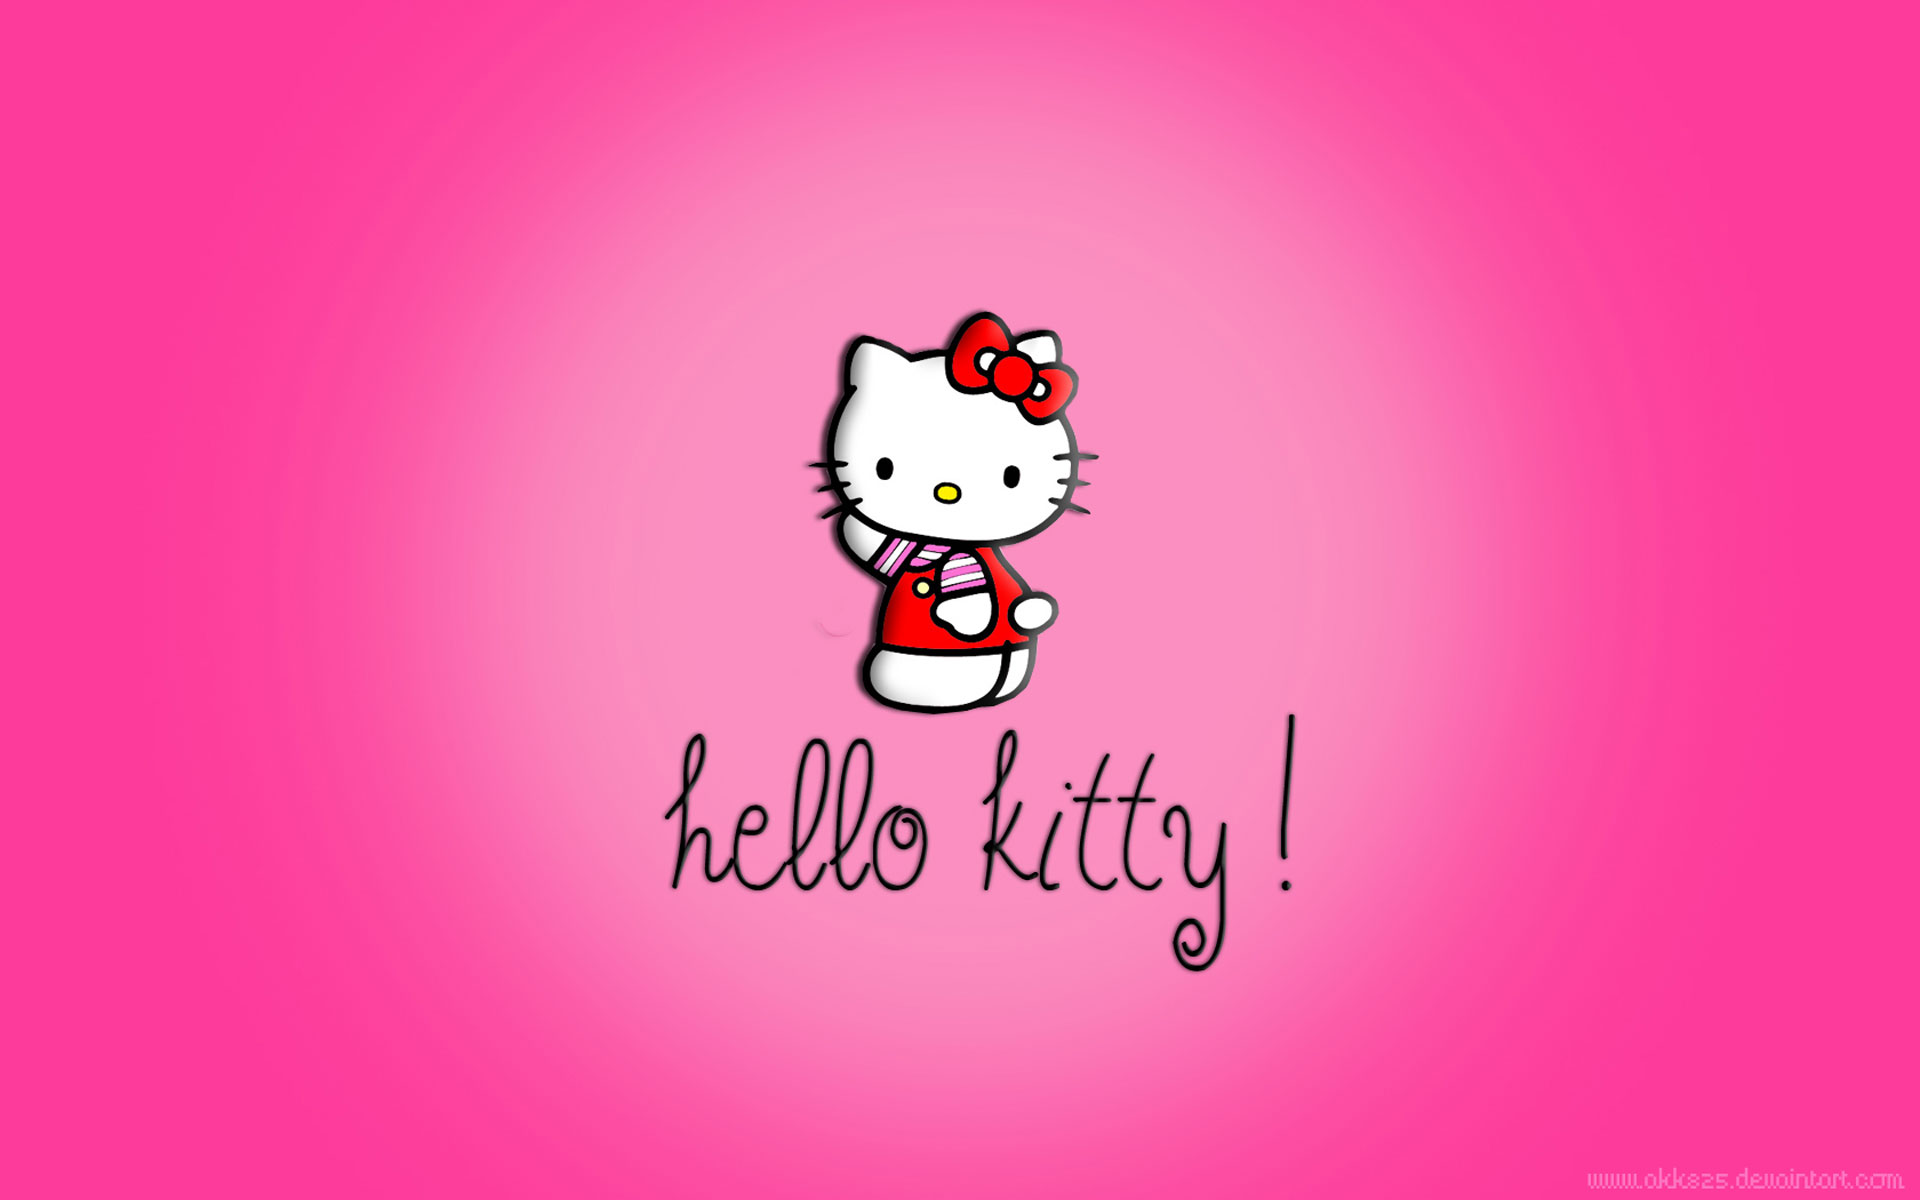 download Hello Kitty Wallpaper Desktop 400 Hd Wallpapers in 1920x1200